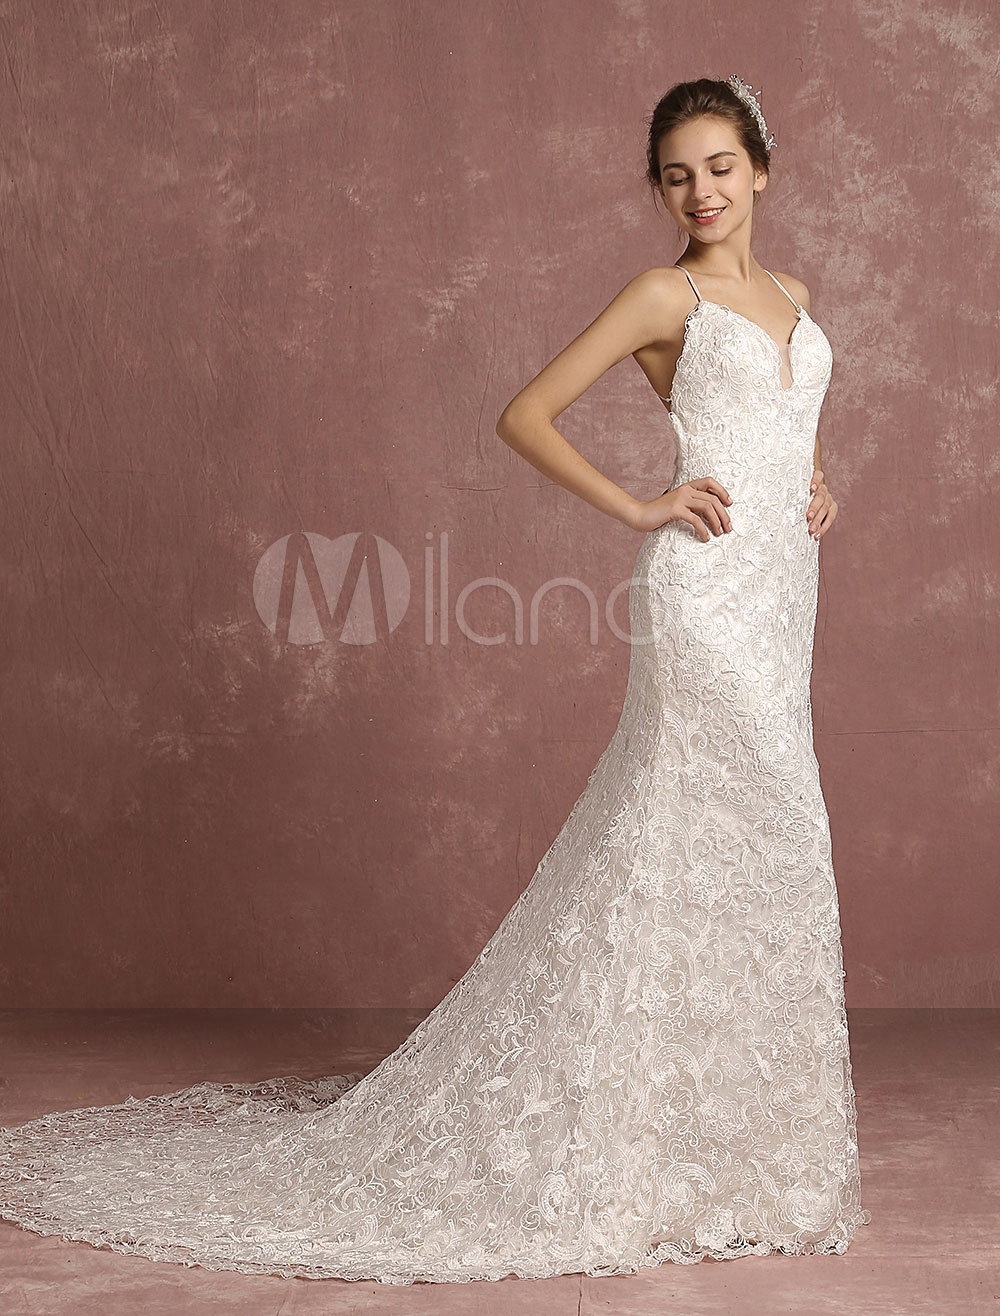 Buy Summer Wedding Dresses 2018 Lace Boho Cathedral Train Bridal Gown Mermaid Spaghetti Straps V Neck Backless Bridal Dress for $397.79 in Milanoo store